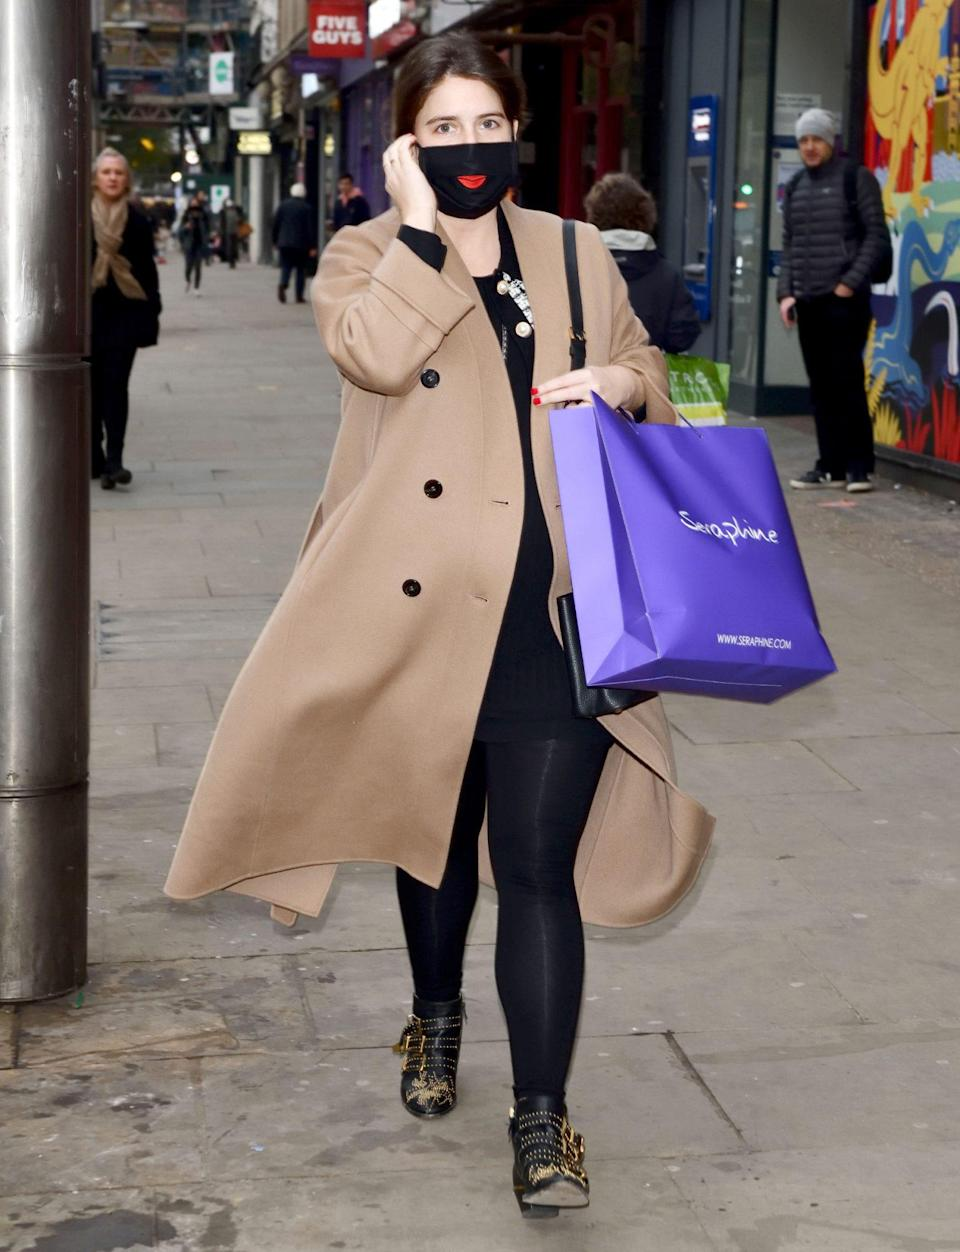 <p>Princess Eugenie leaves Seraphine on Kensington High Street with a bag full of goodies after the store reopened on the first day after lockdown in London on Wednesday. </p>